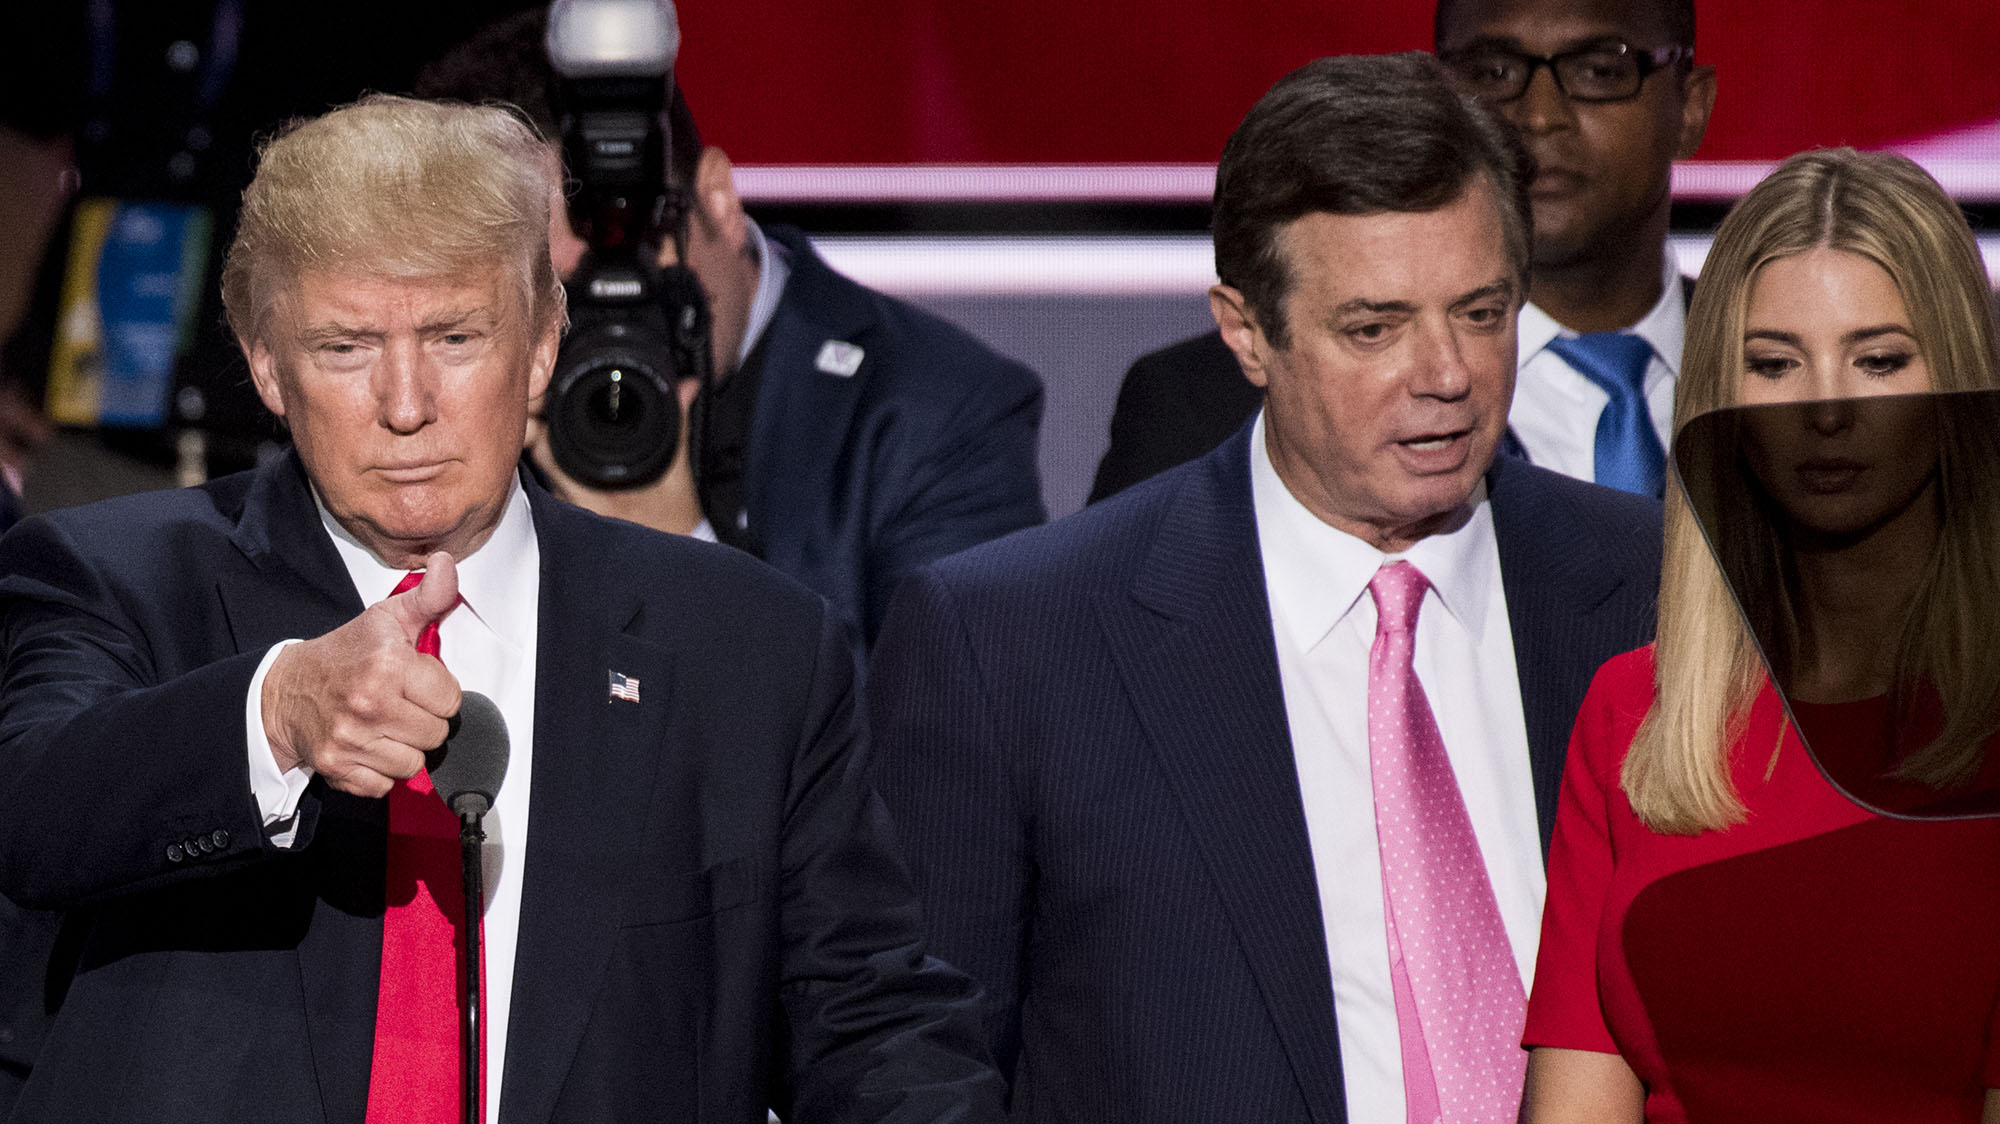 Paul Manafort Was Wiretapped By US Government Before and After Election